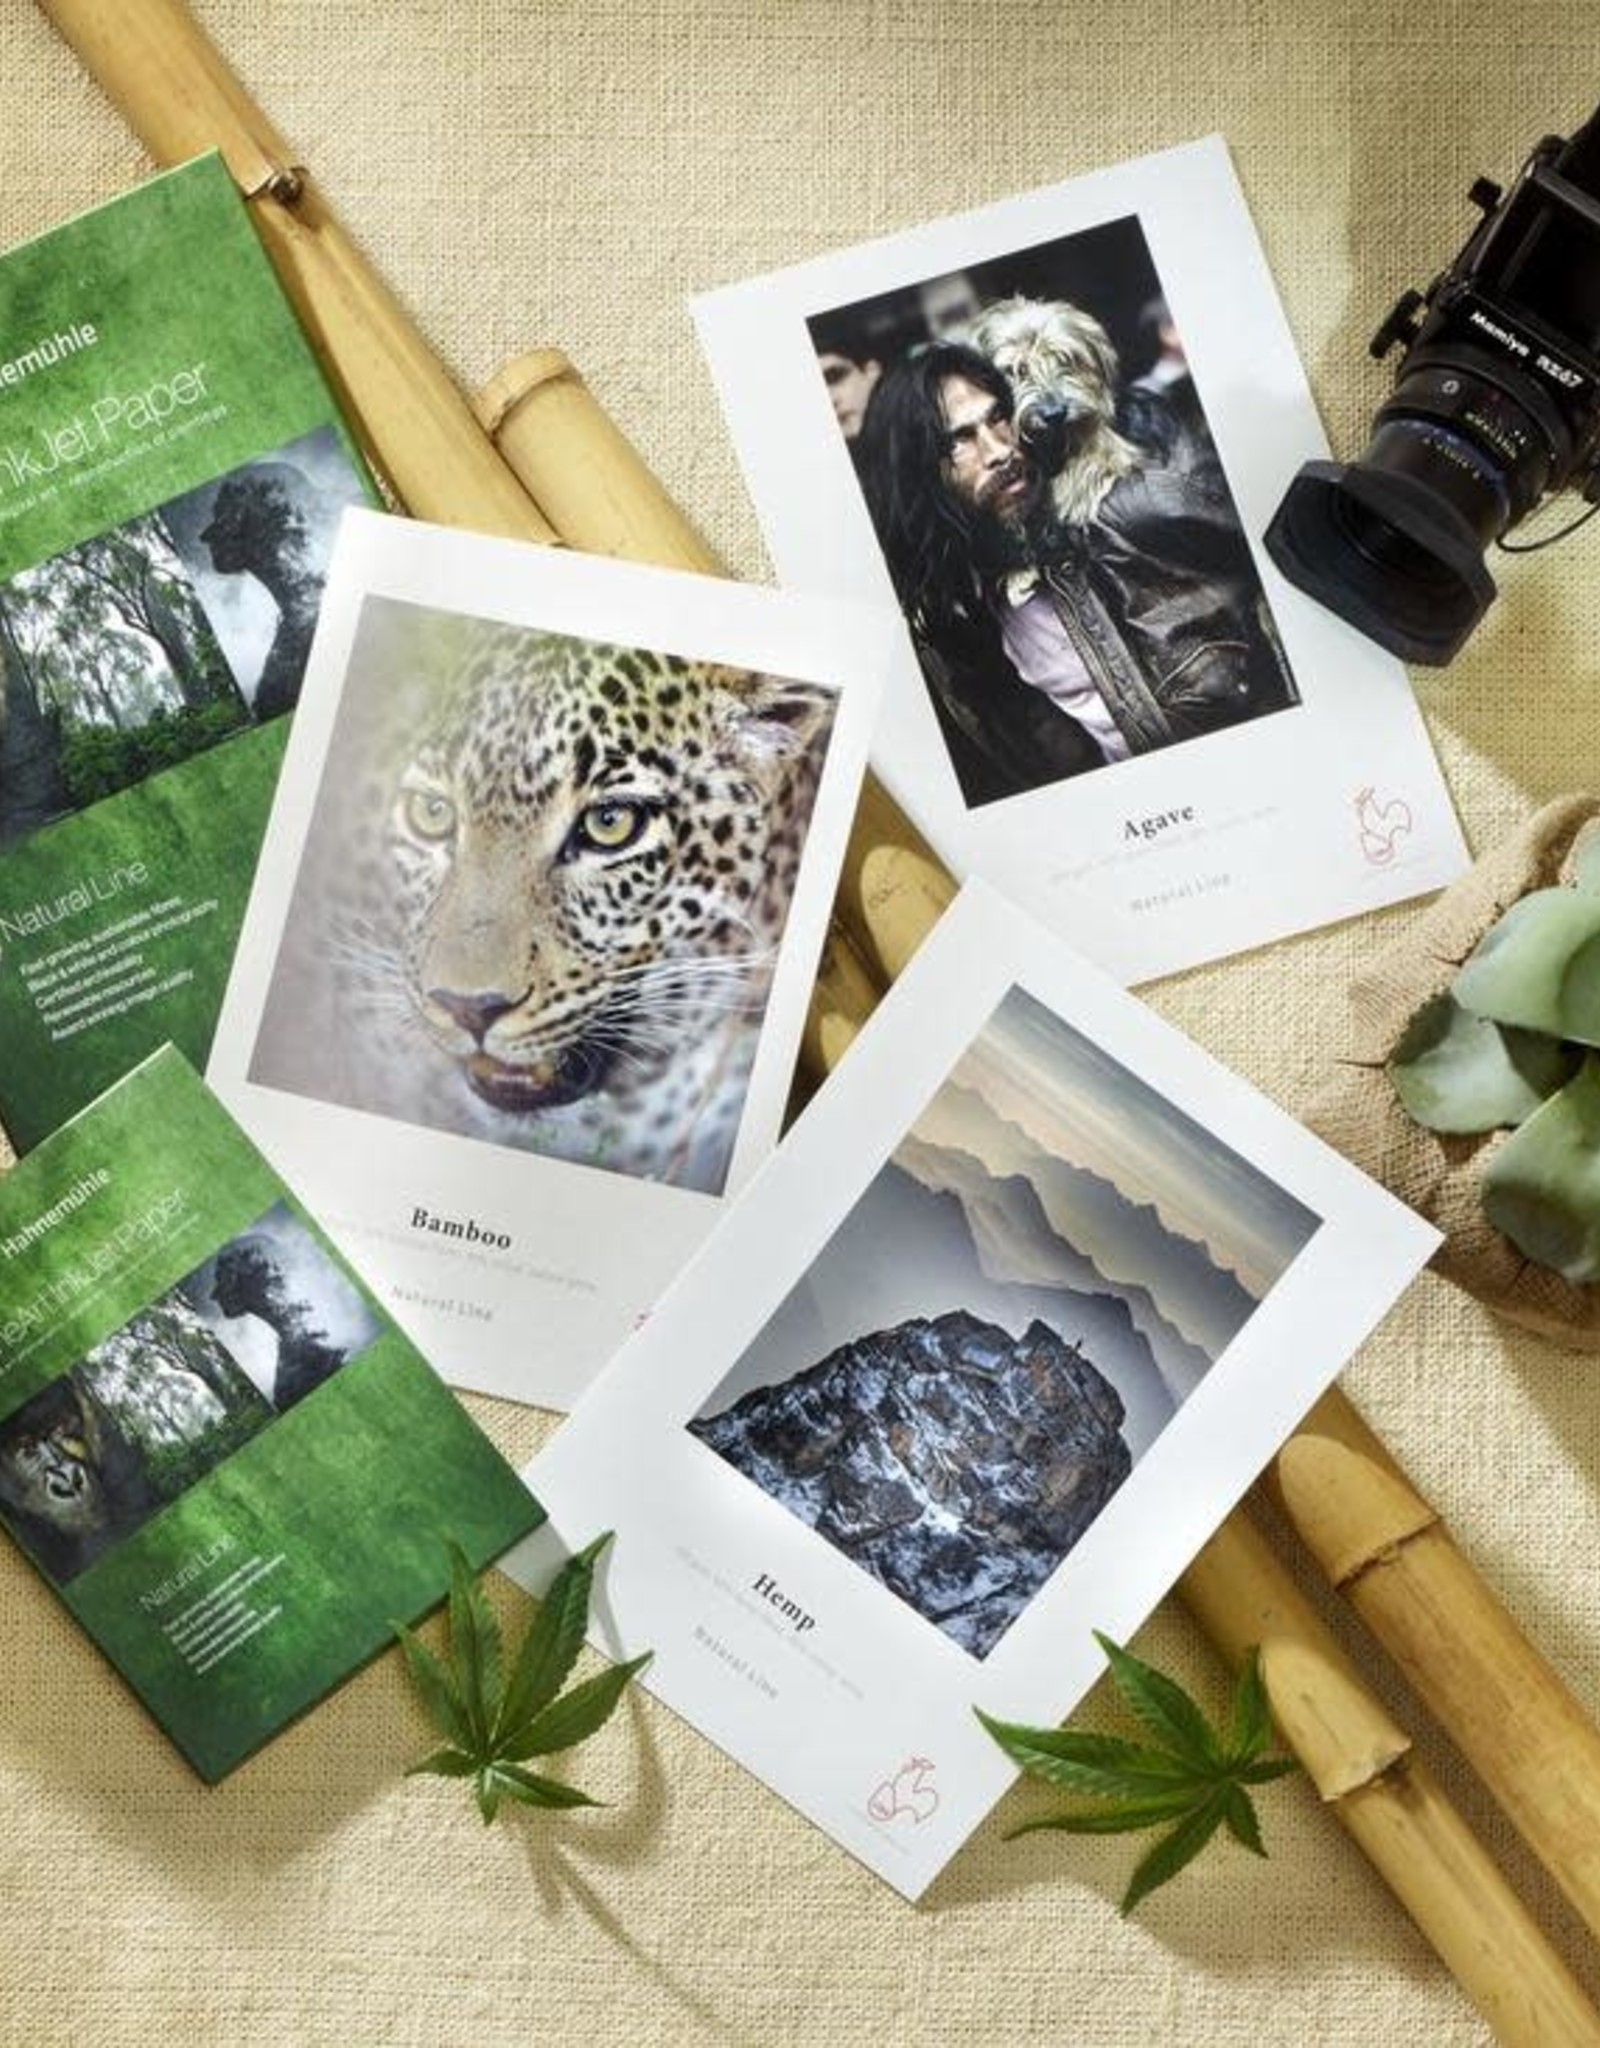 """Hahnemuhle Hahnemuhle Nature Line SAMPLE Pack 8.5""""x11"""" Includes: Bamboo, Hemp, Agave. 2 sheets of each"""